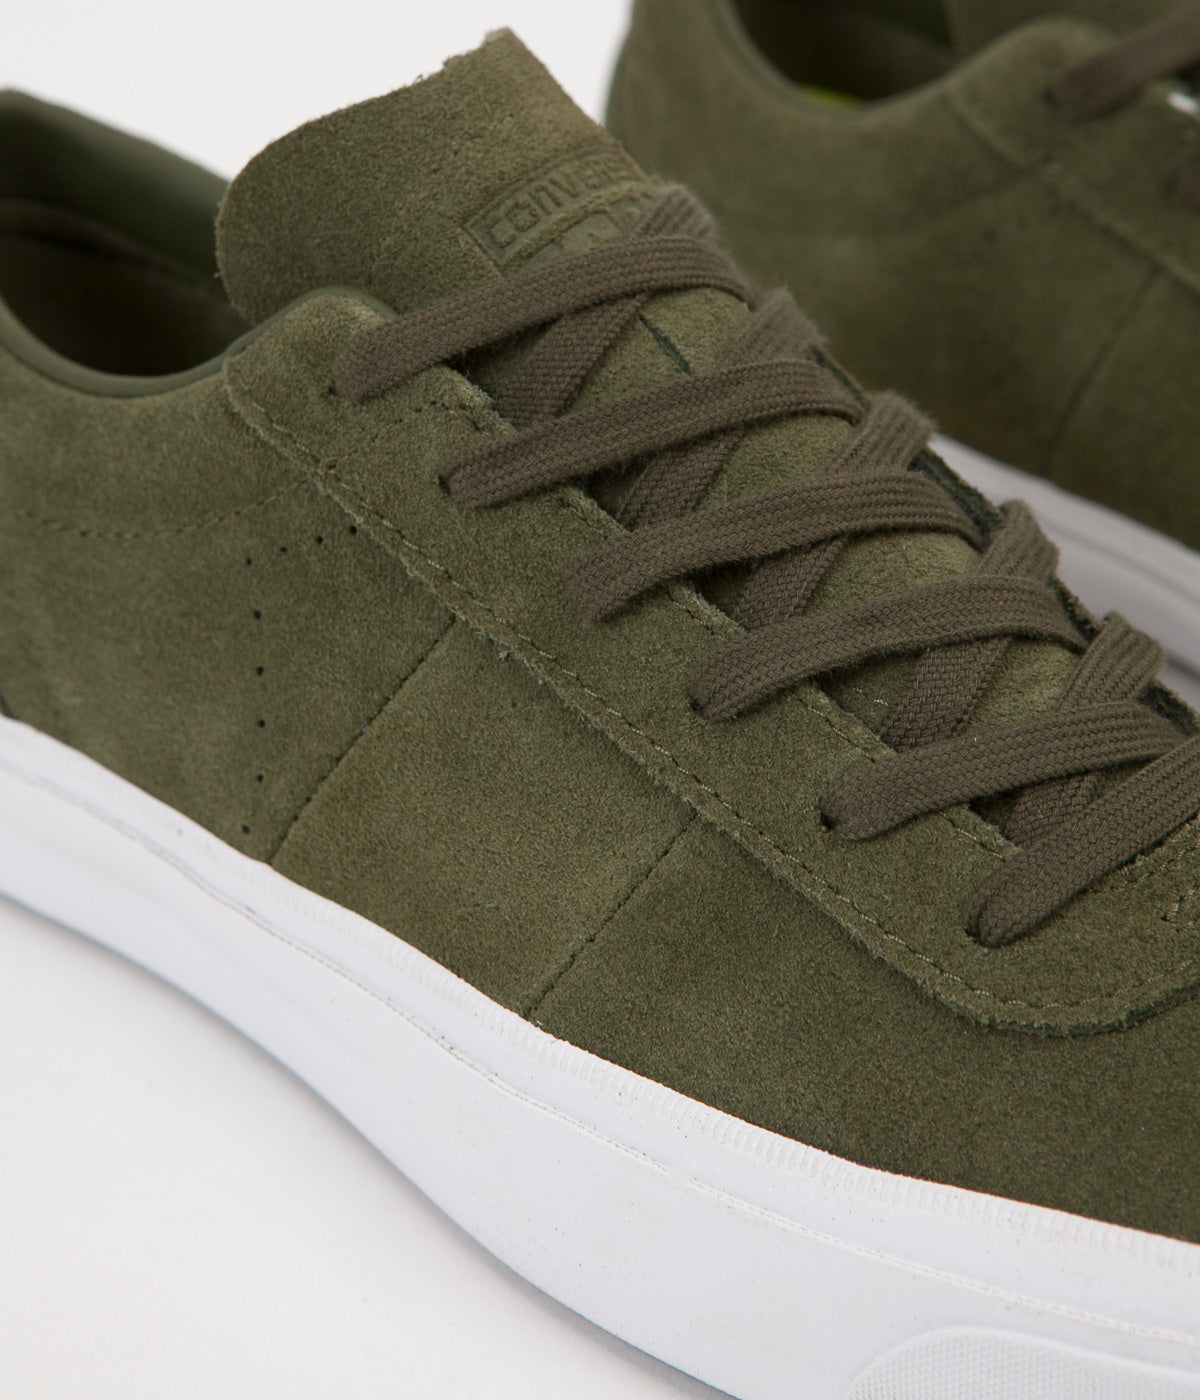 Converse One Star CC Ox Shoes - Herbal / Herbal / White